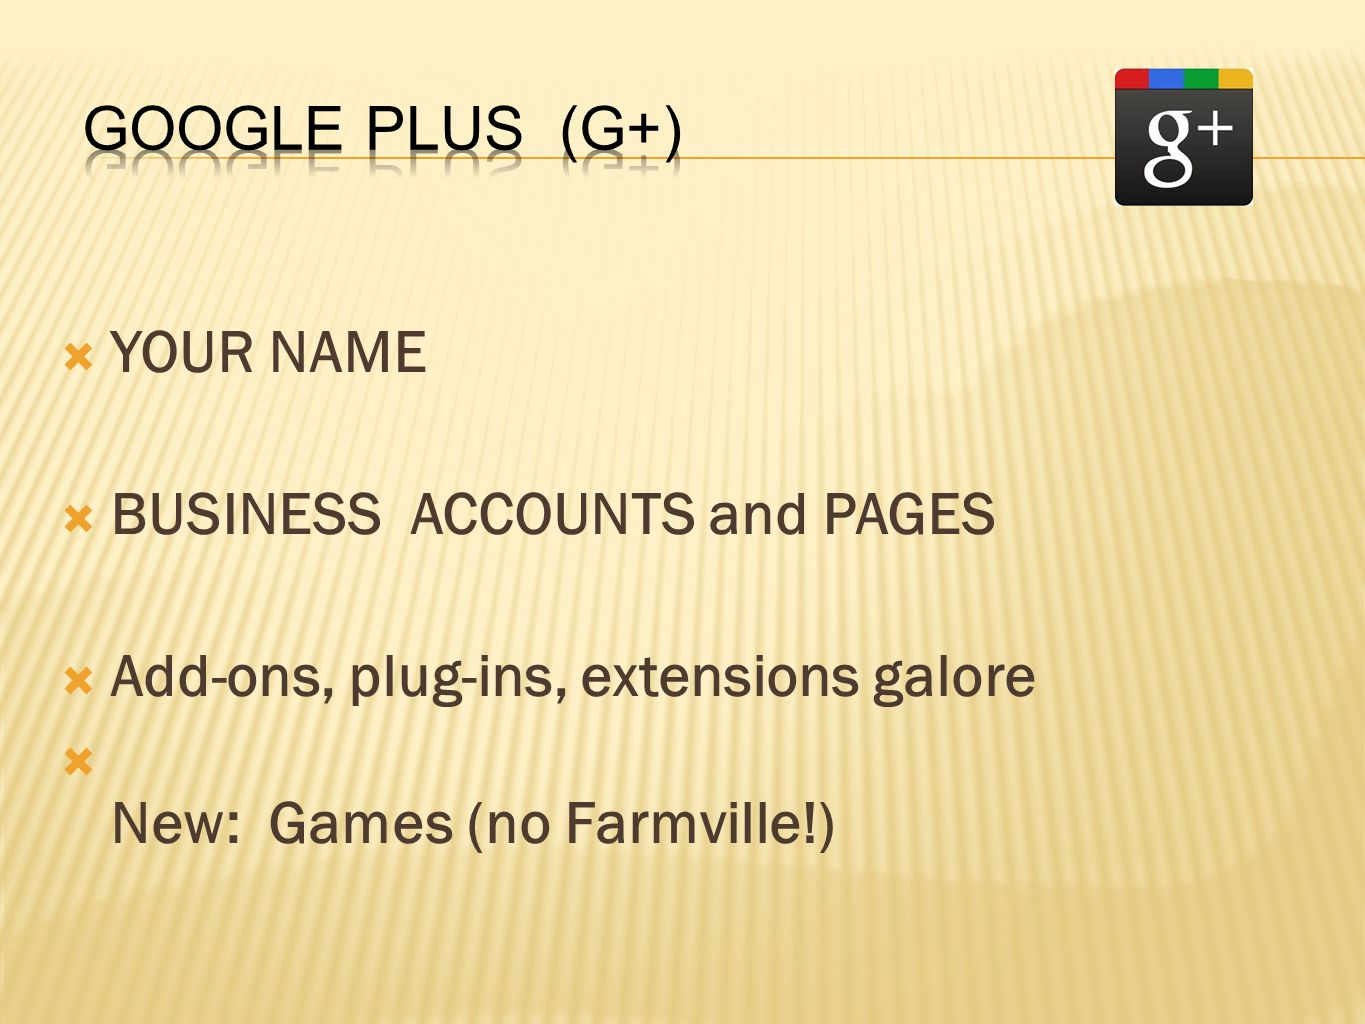  YOUR NAME  BUSINESS ACCOUNTS and PAGES  Add-ons, plug-ins, extensions galore  New: Games (no Farmville!)